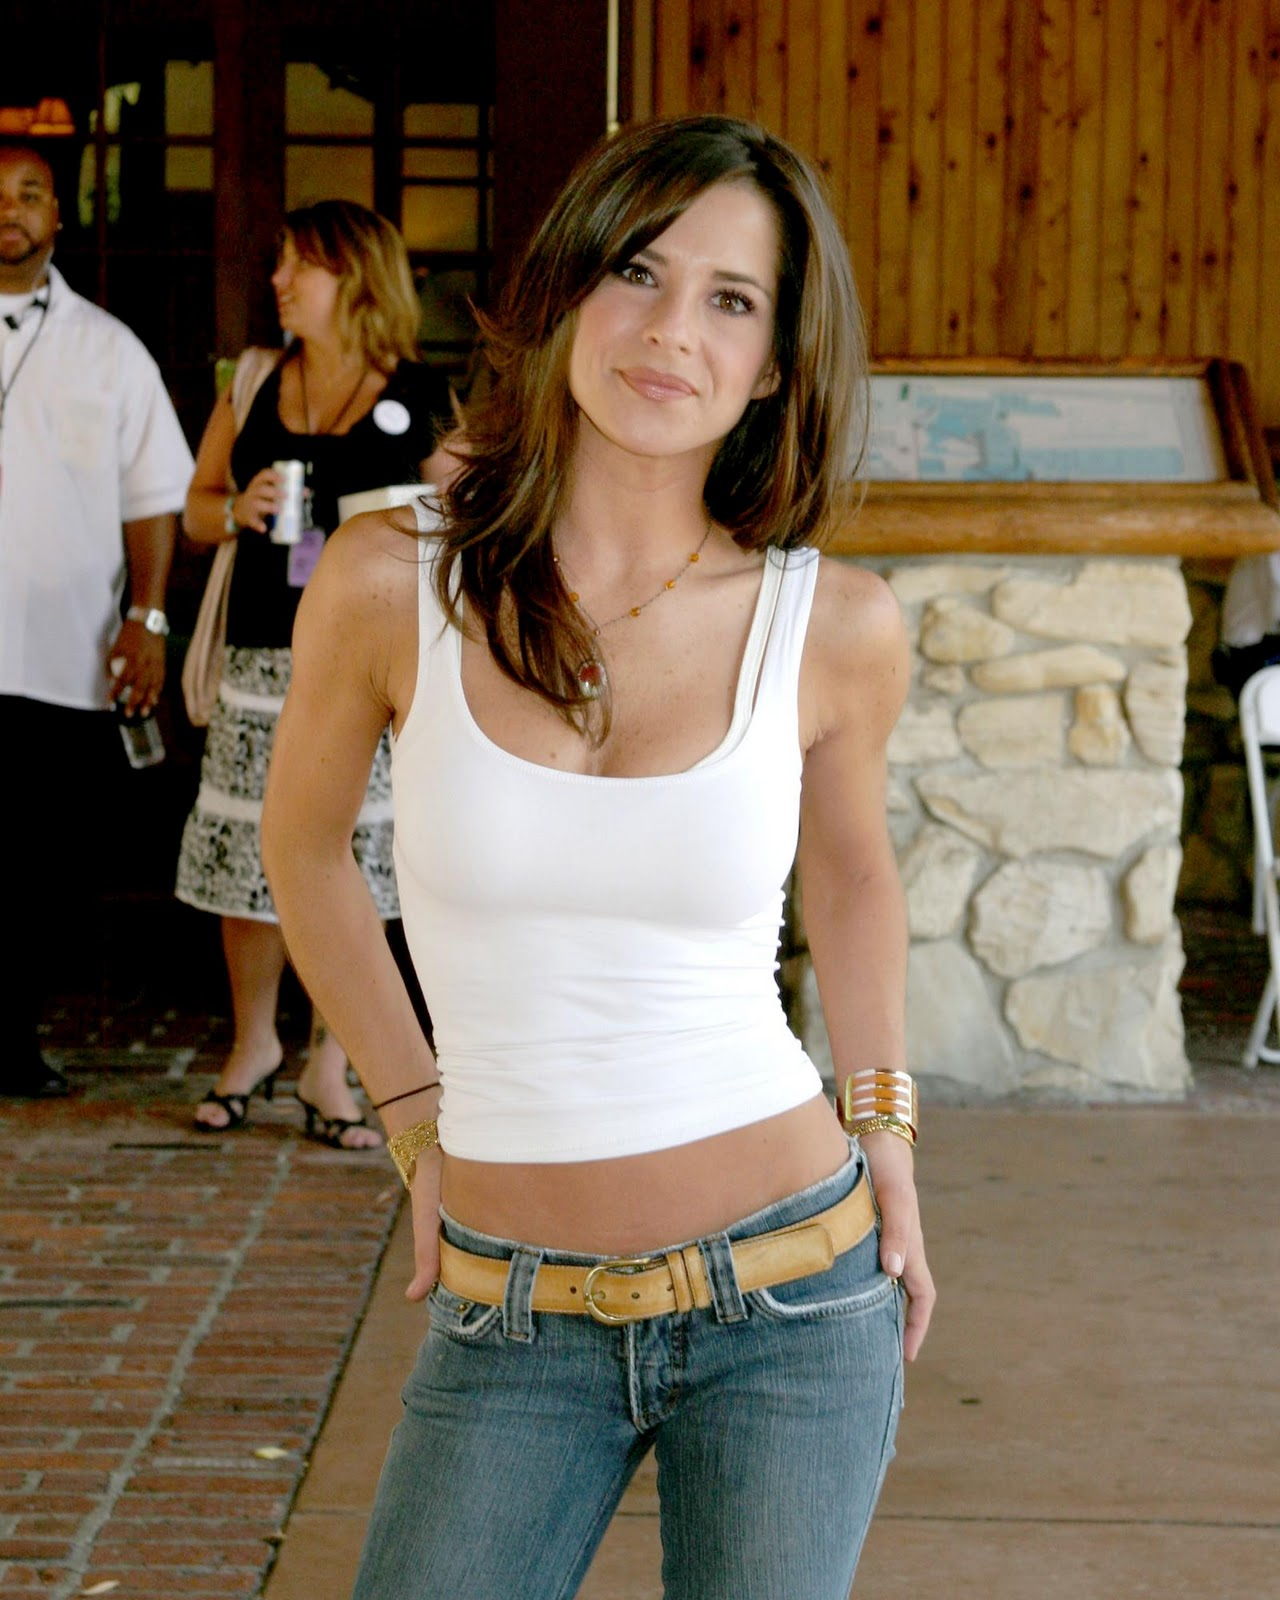 Kelly monaco hot